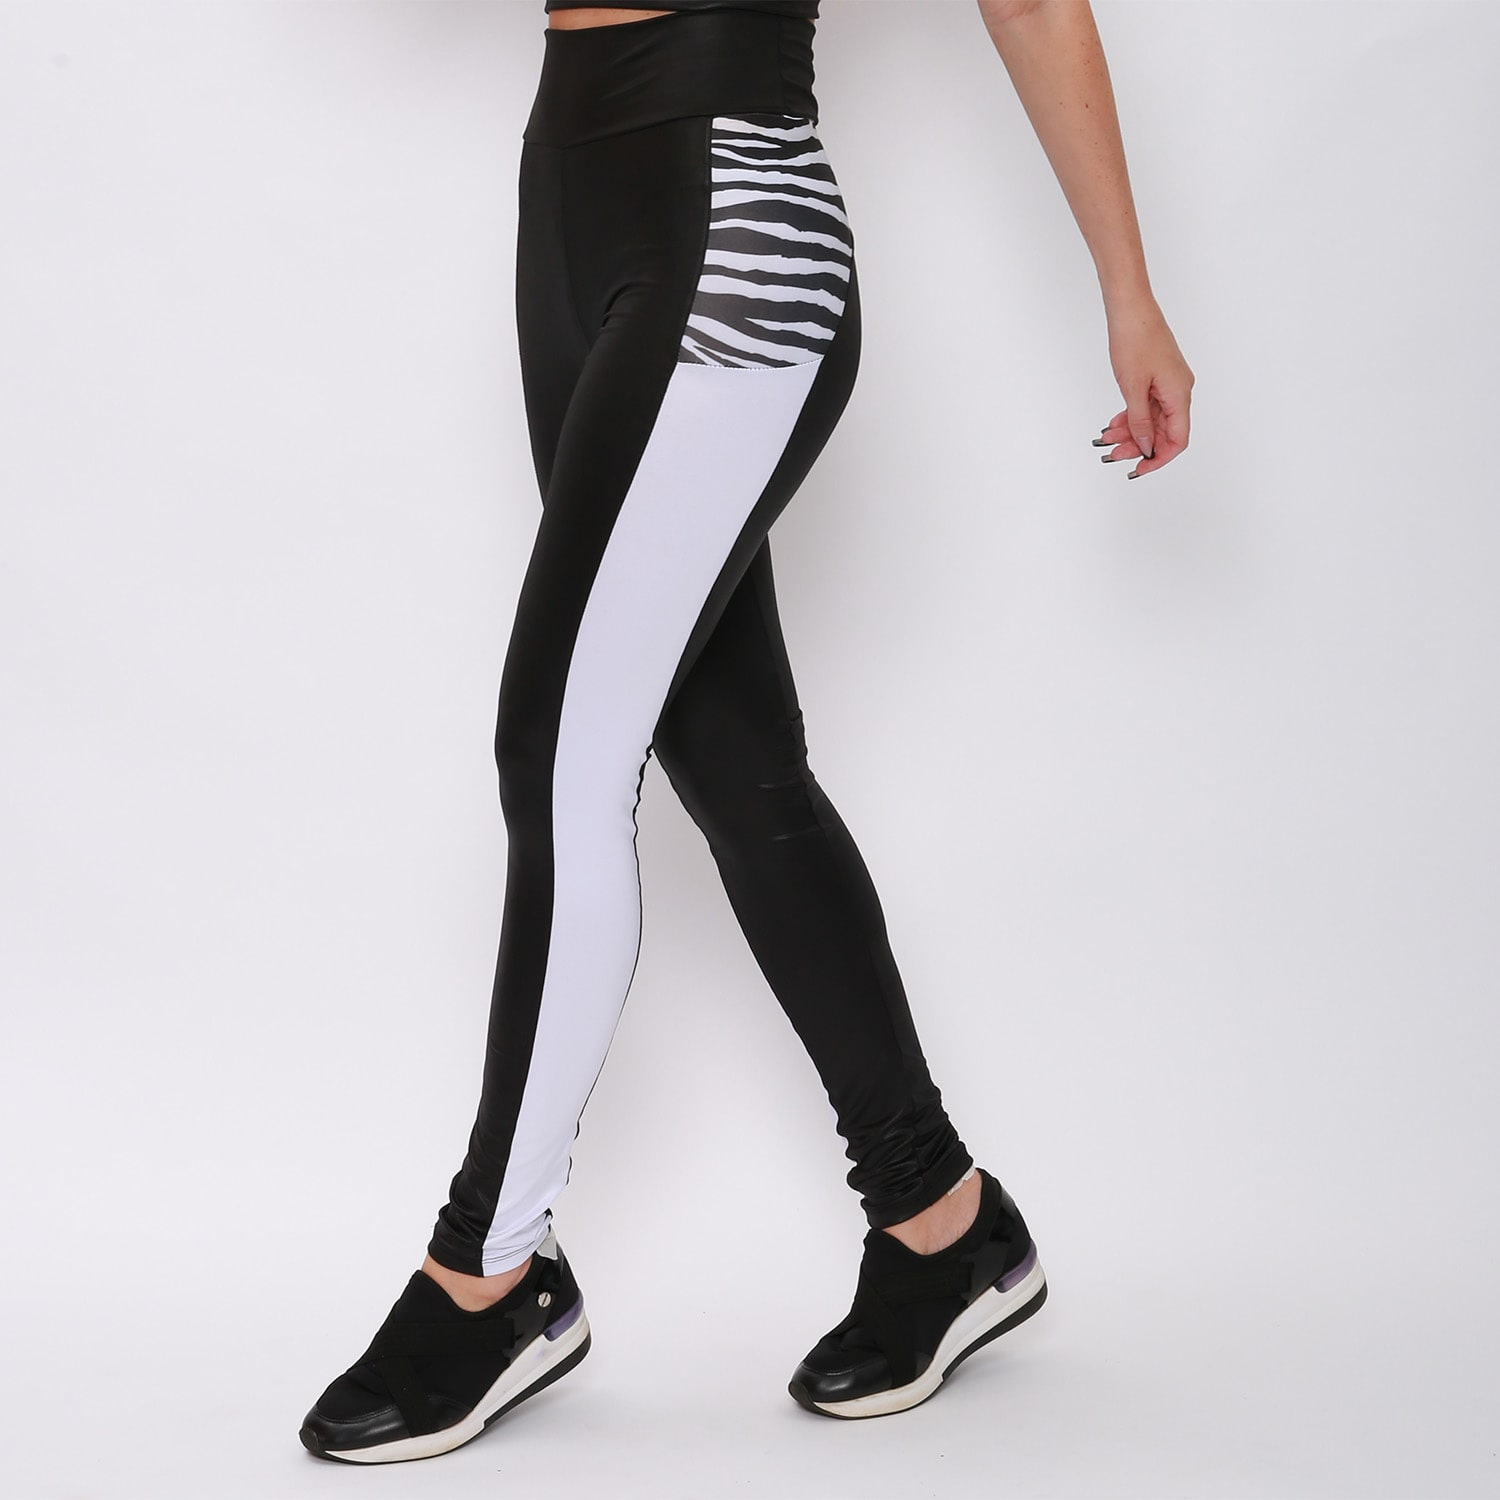 LEGGING STRIPS